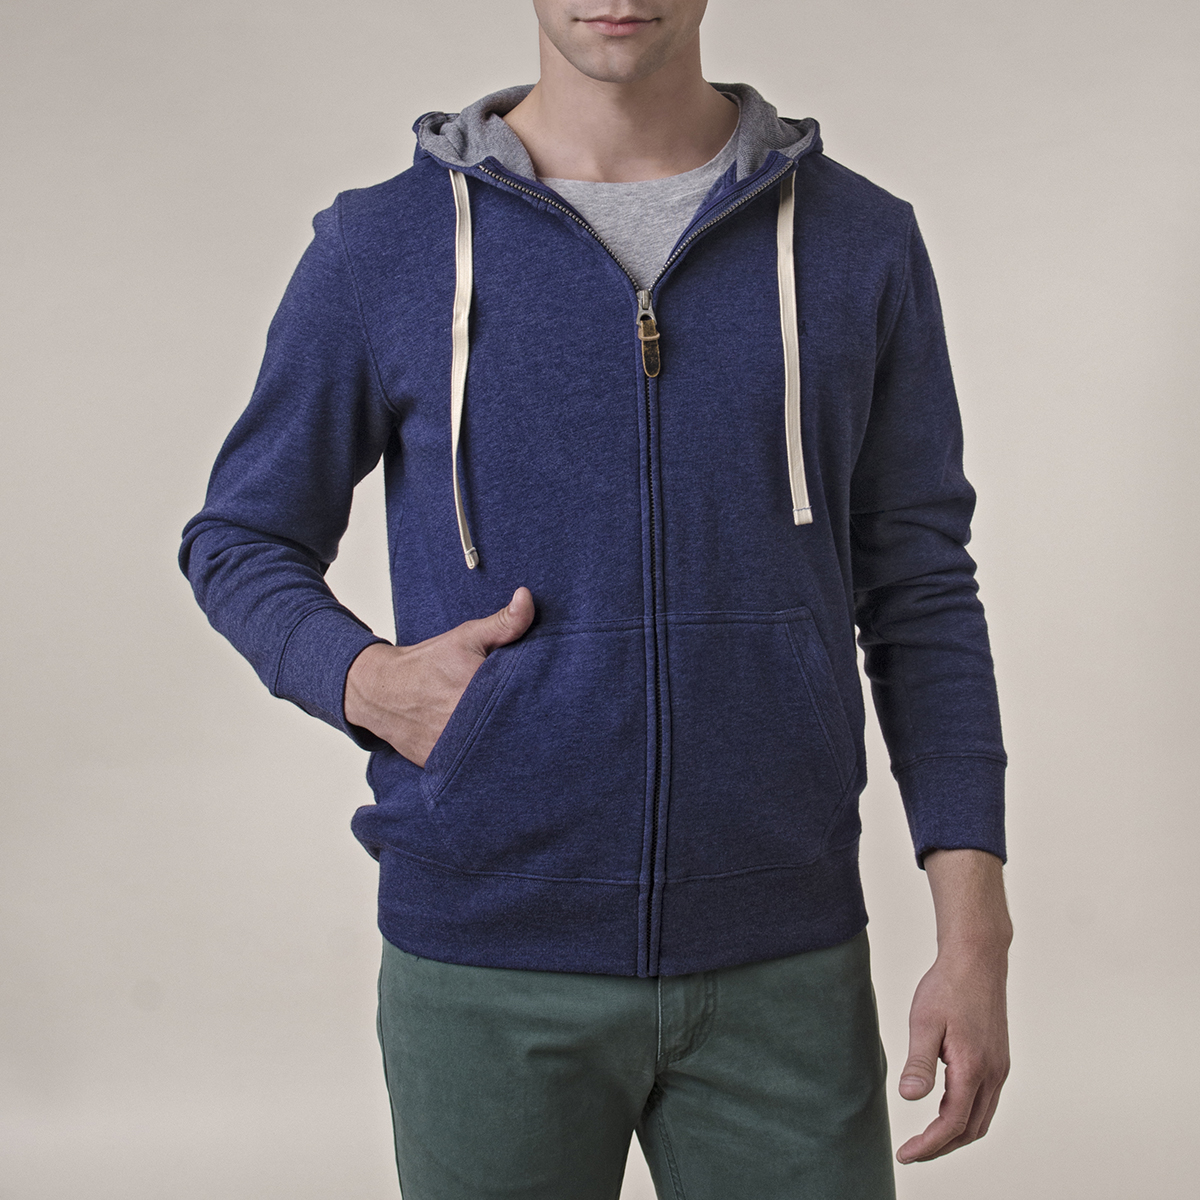 Poleron Liso Fleece Canguro Light Weight